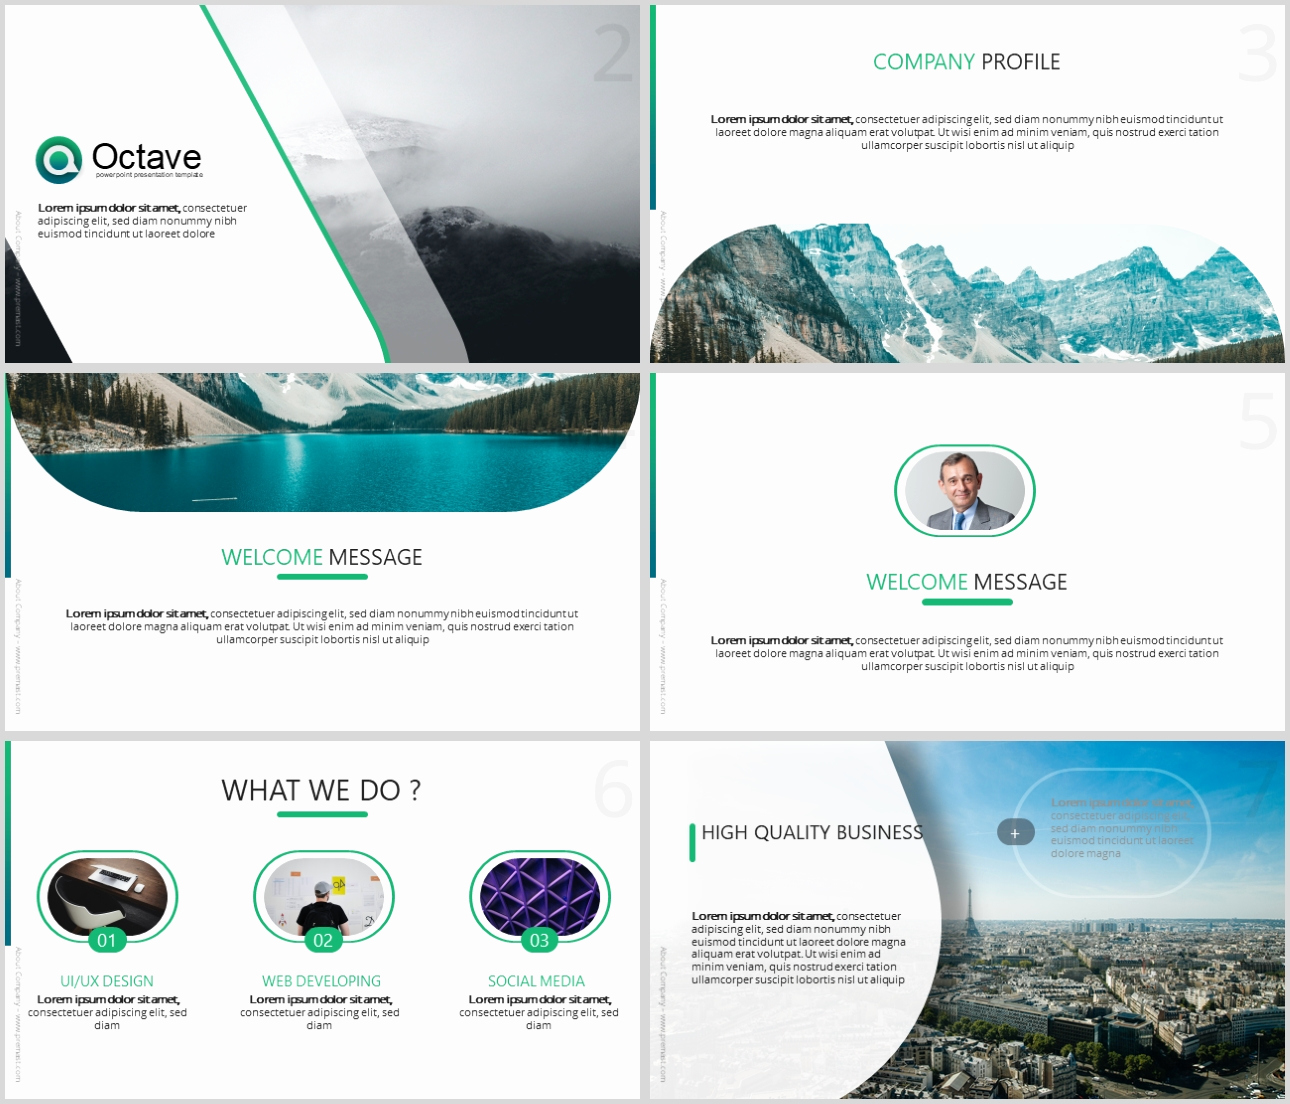 Free Modern Powerpoint Templates Unique Octave Free Powerpoint Presentation Template Just Free